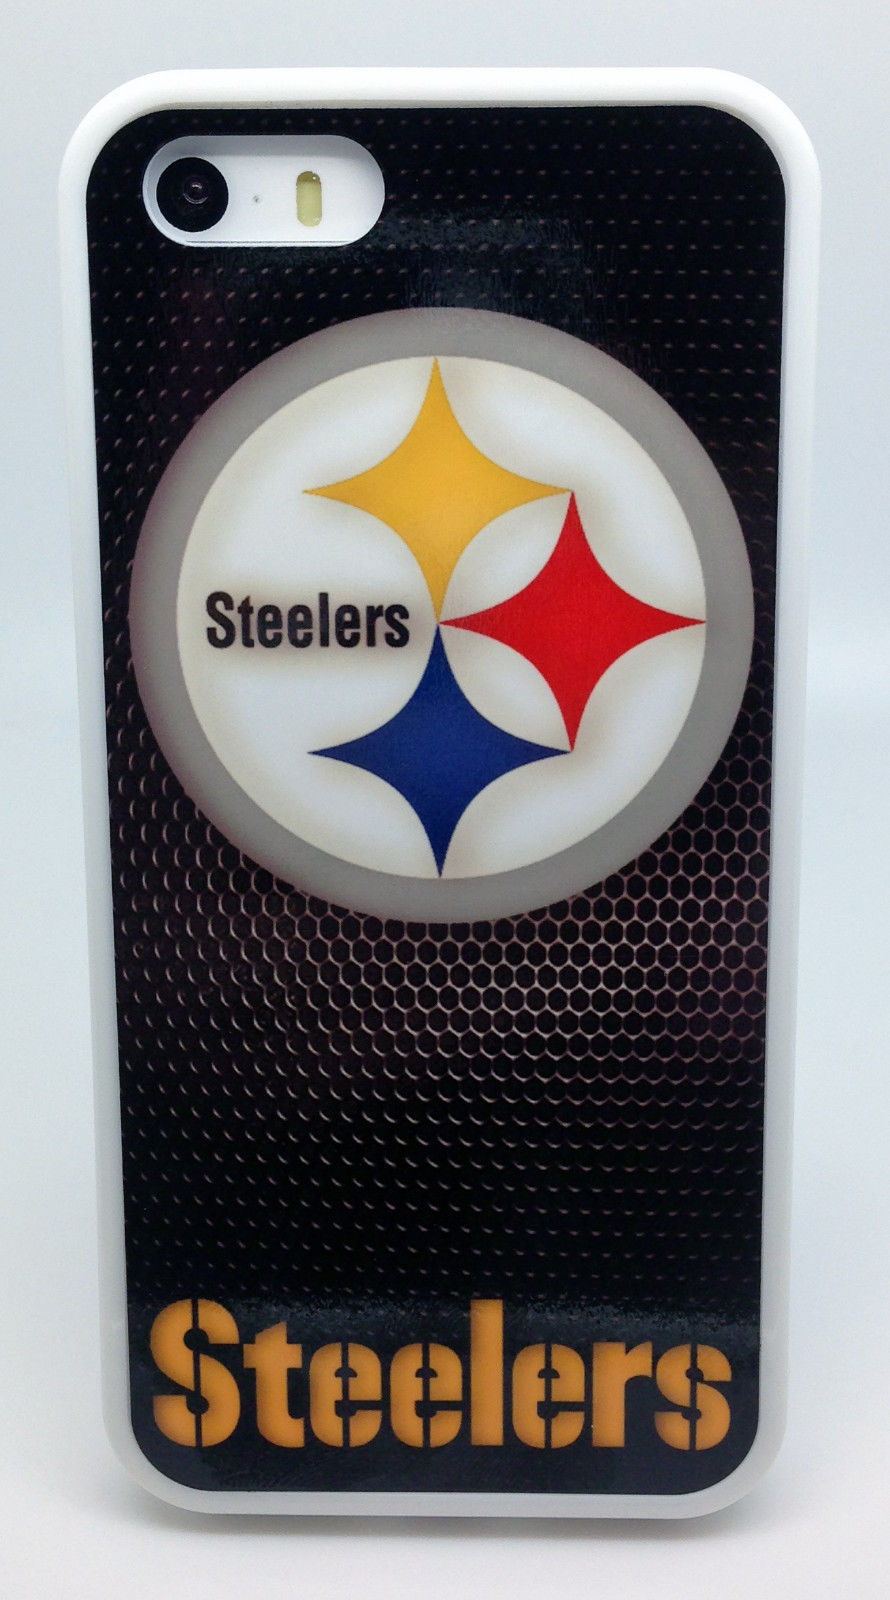 NEW PITTSBURGH STEELERS NFL FOOTBALL CASE COVER FOR iPHONE 6S 6 PLUS 5 5S 5C 4S